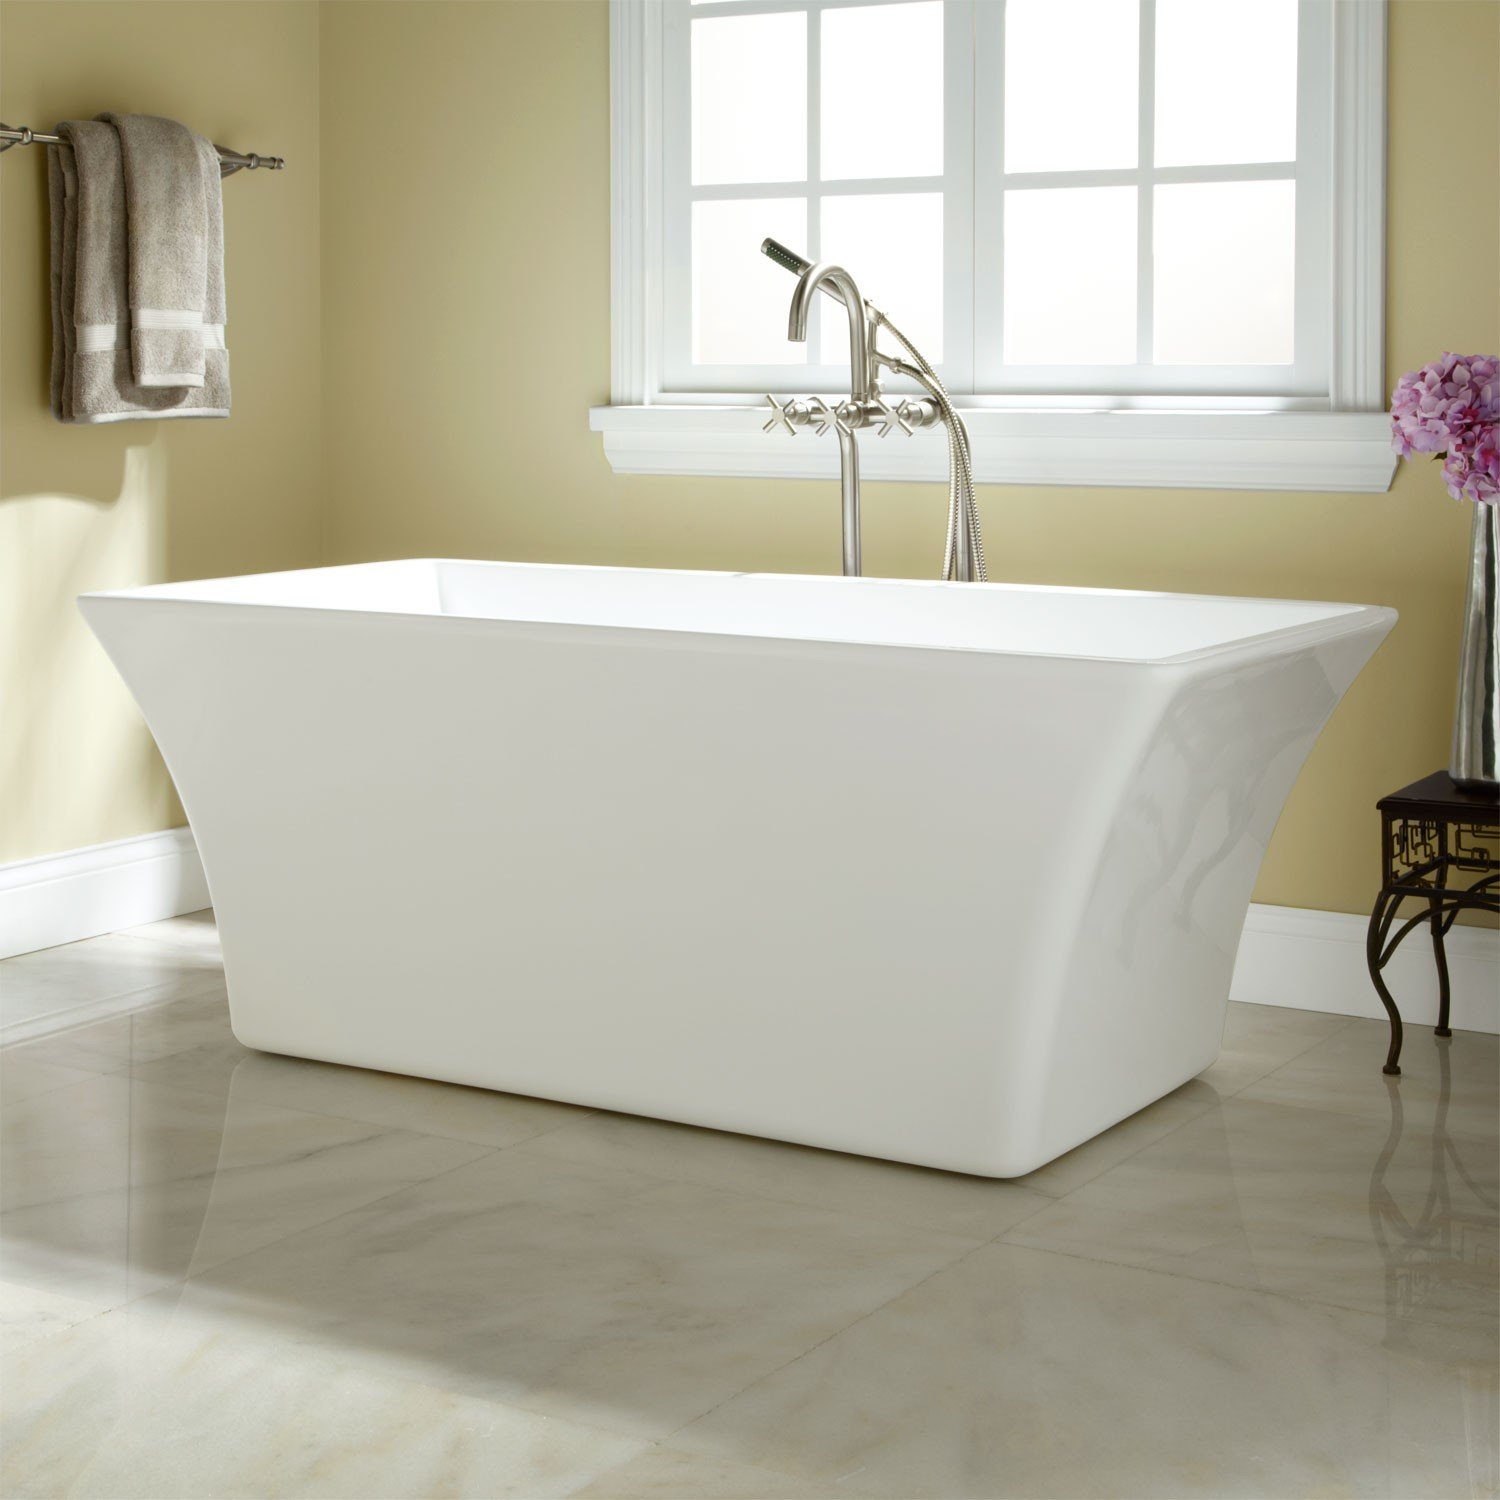 A Bathtub Can Be Your Little Piece of Heaven - Colorado Real Estate ...